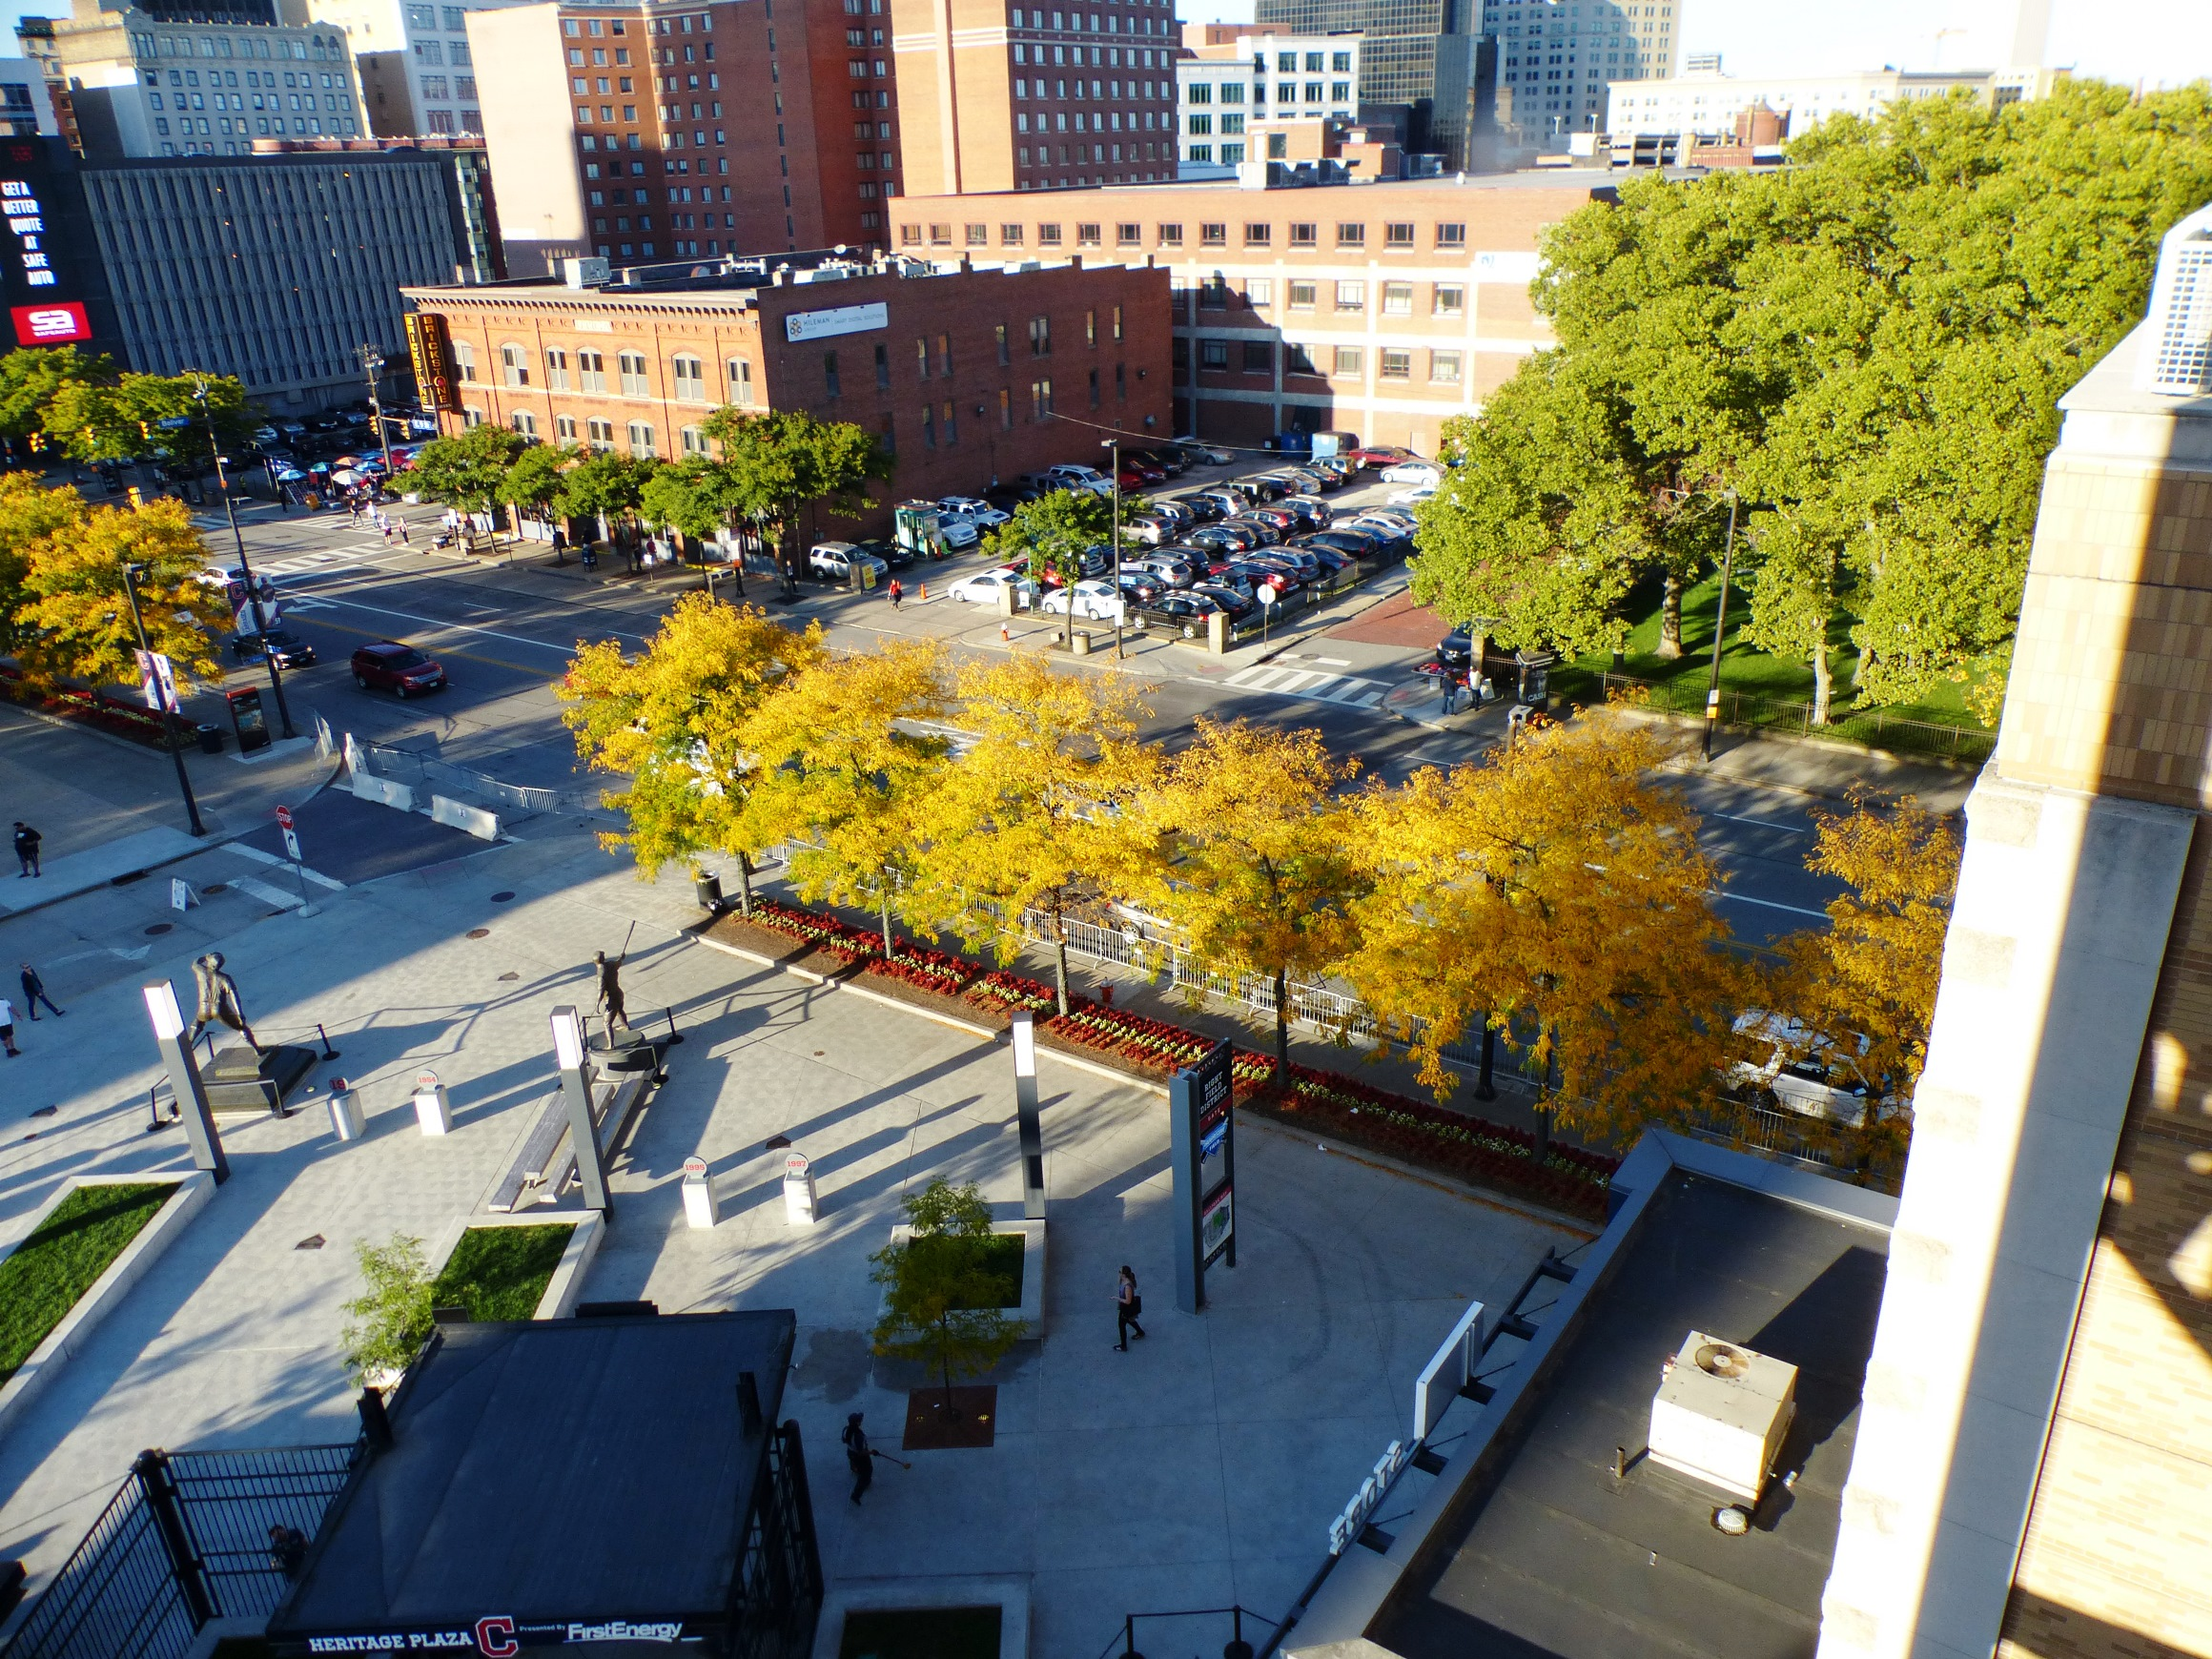 Fall color of honeylocust high above Progressive Field in Cleveland